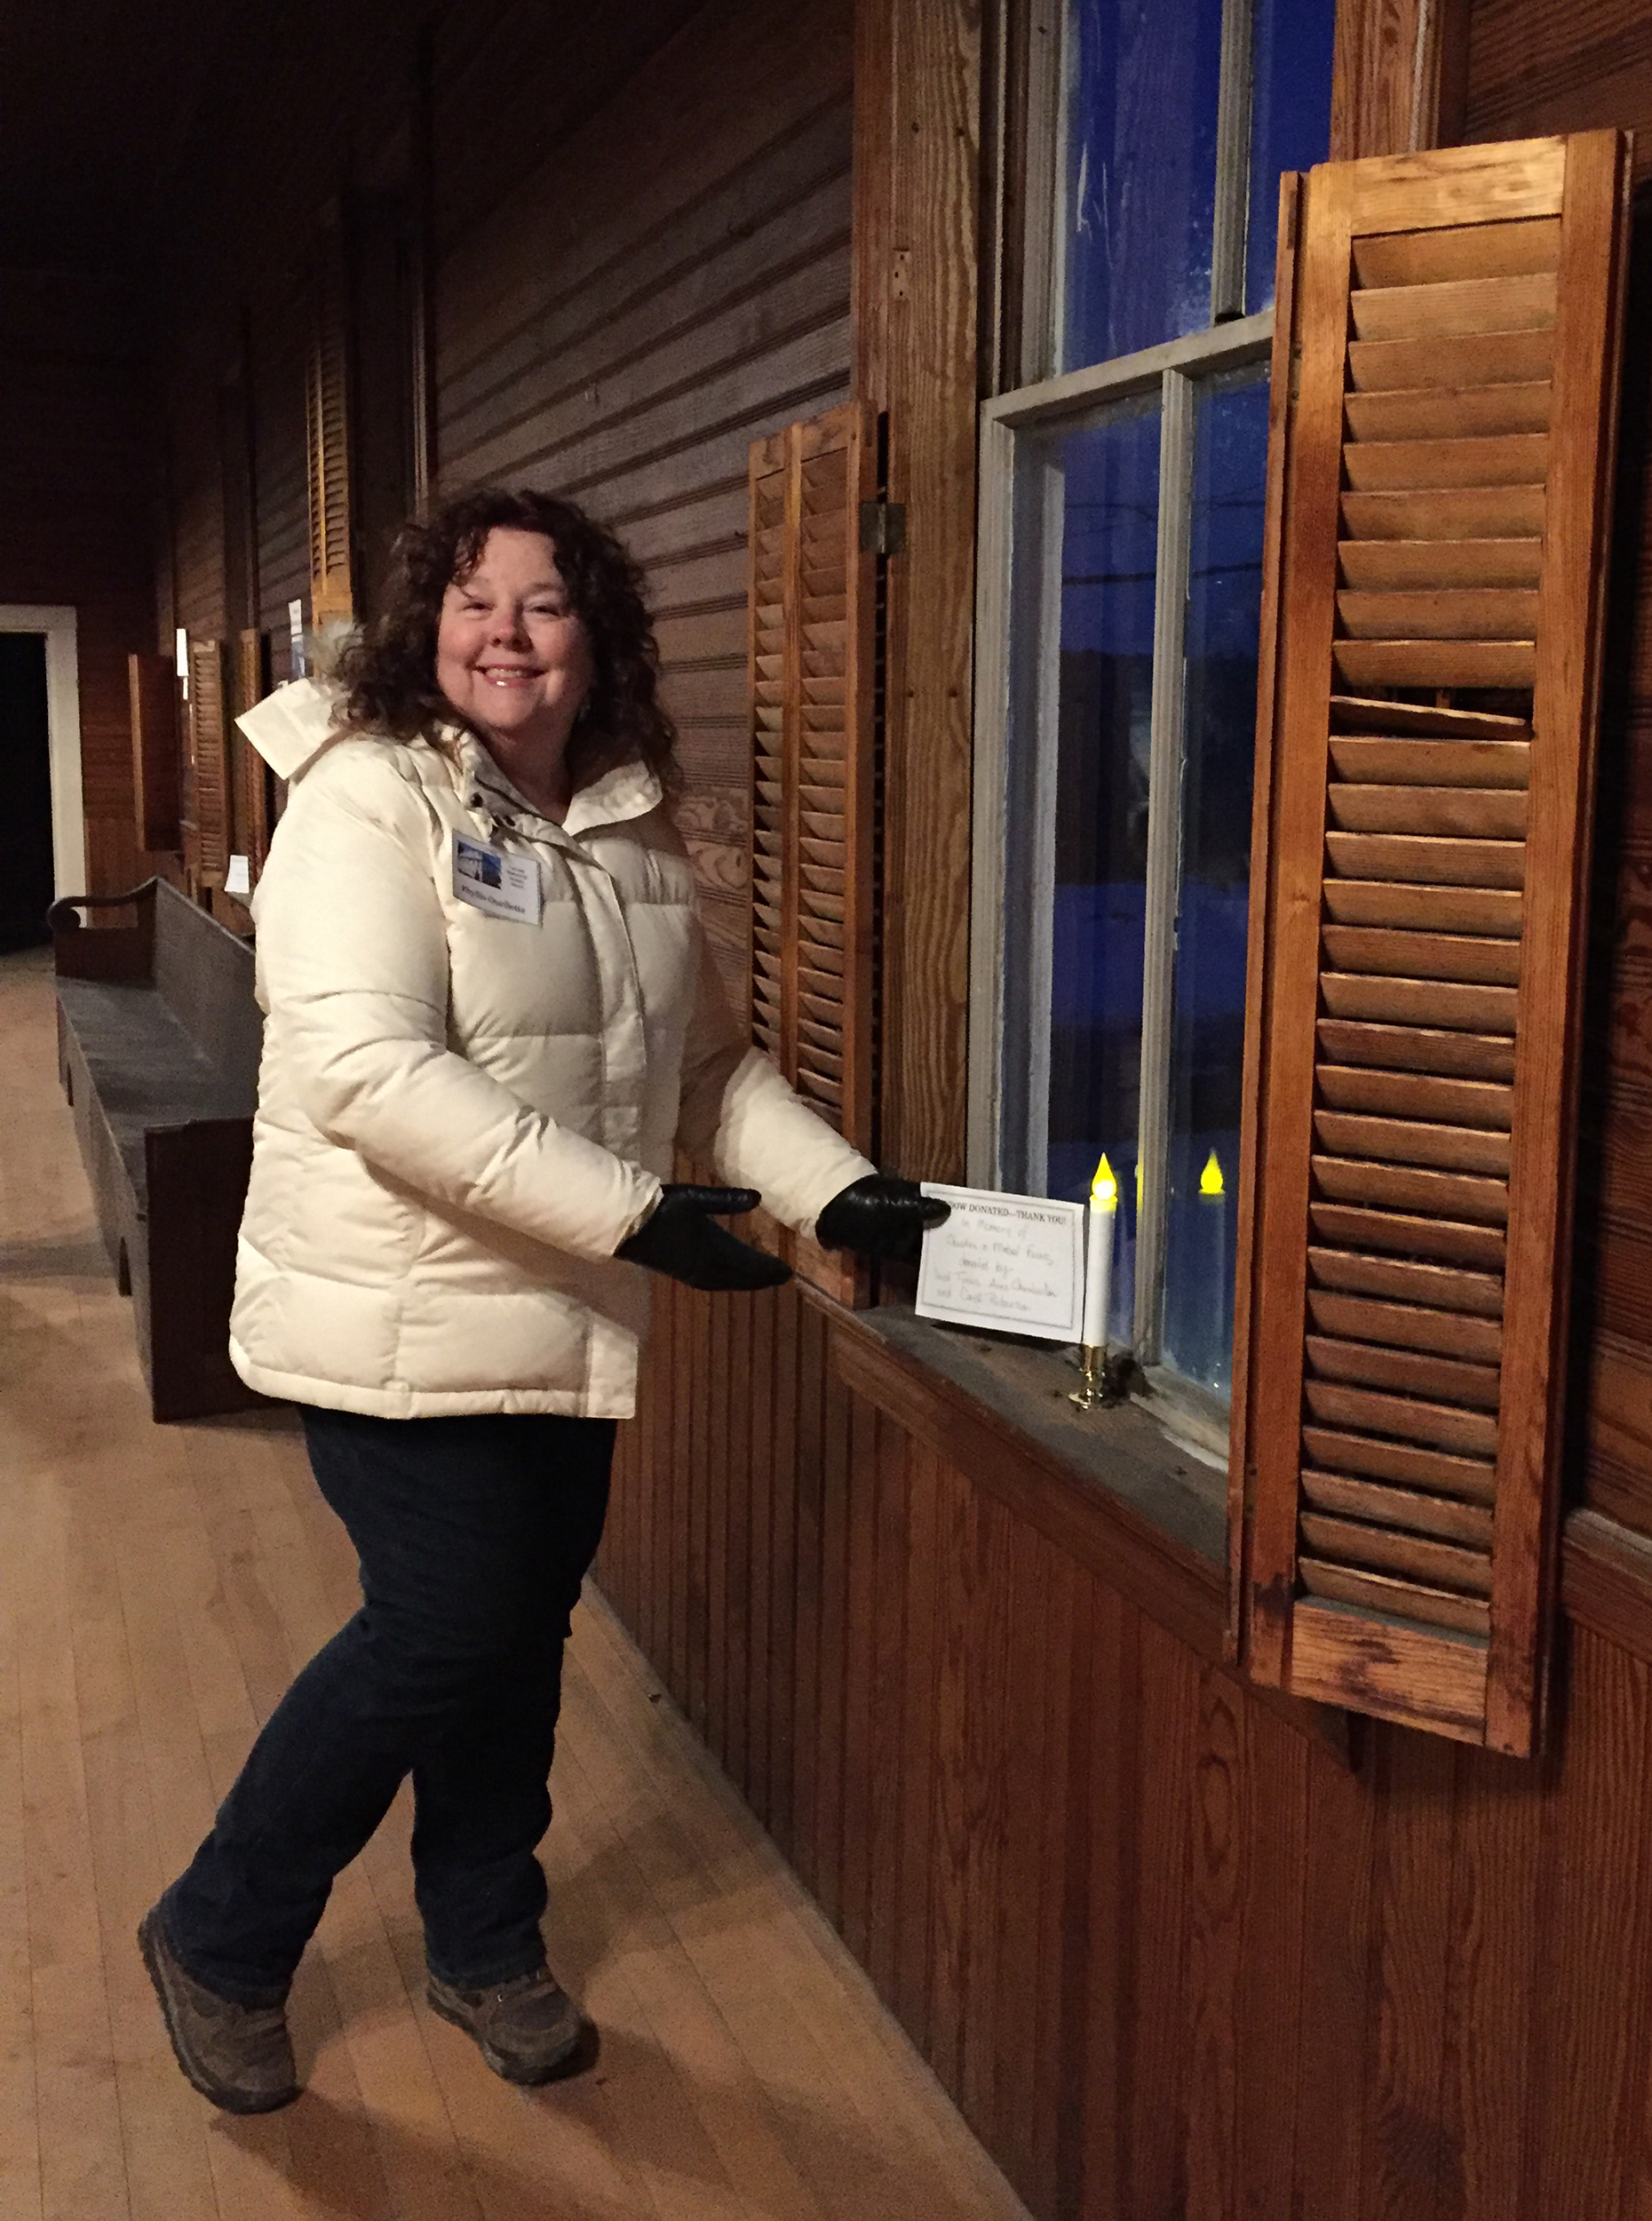 Phyllis Ouellette places one of the window donation signs during the Open House night.